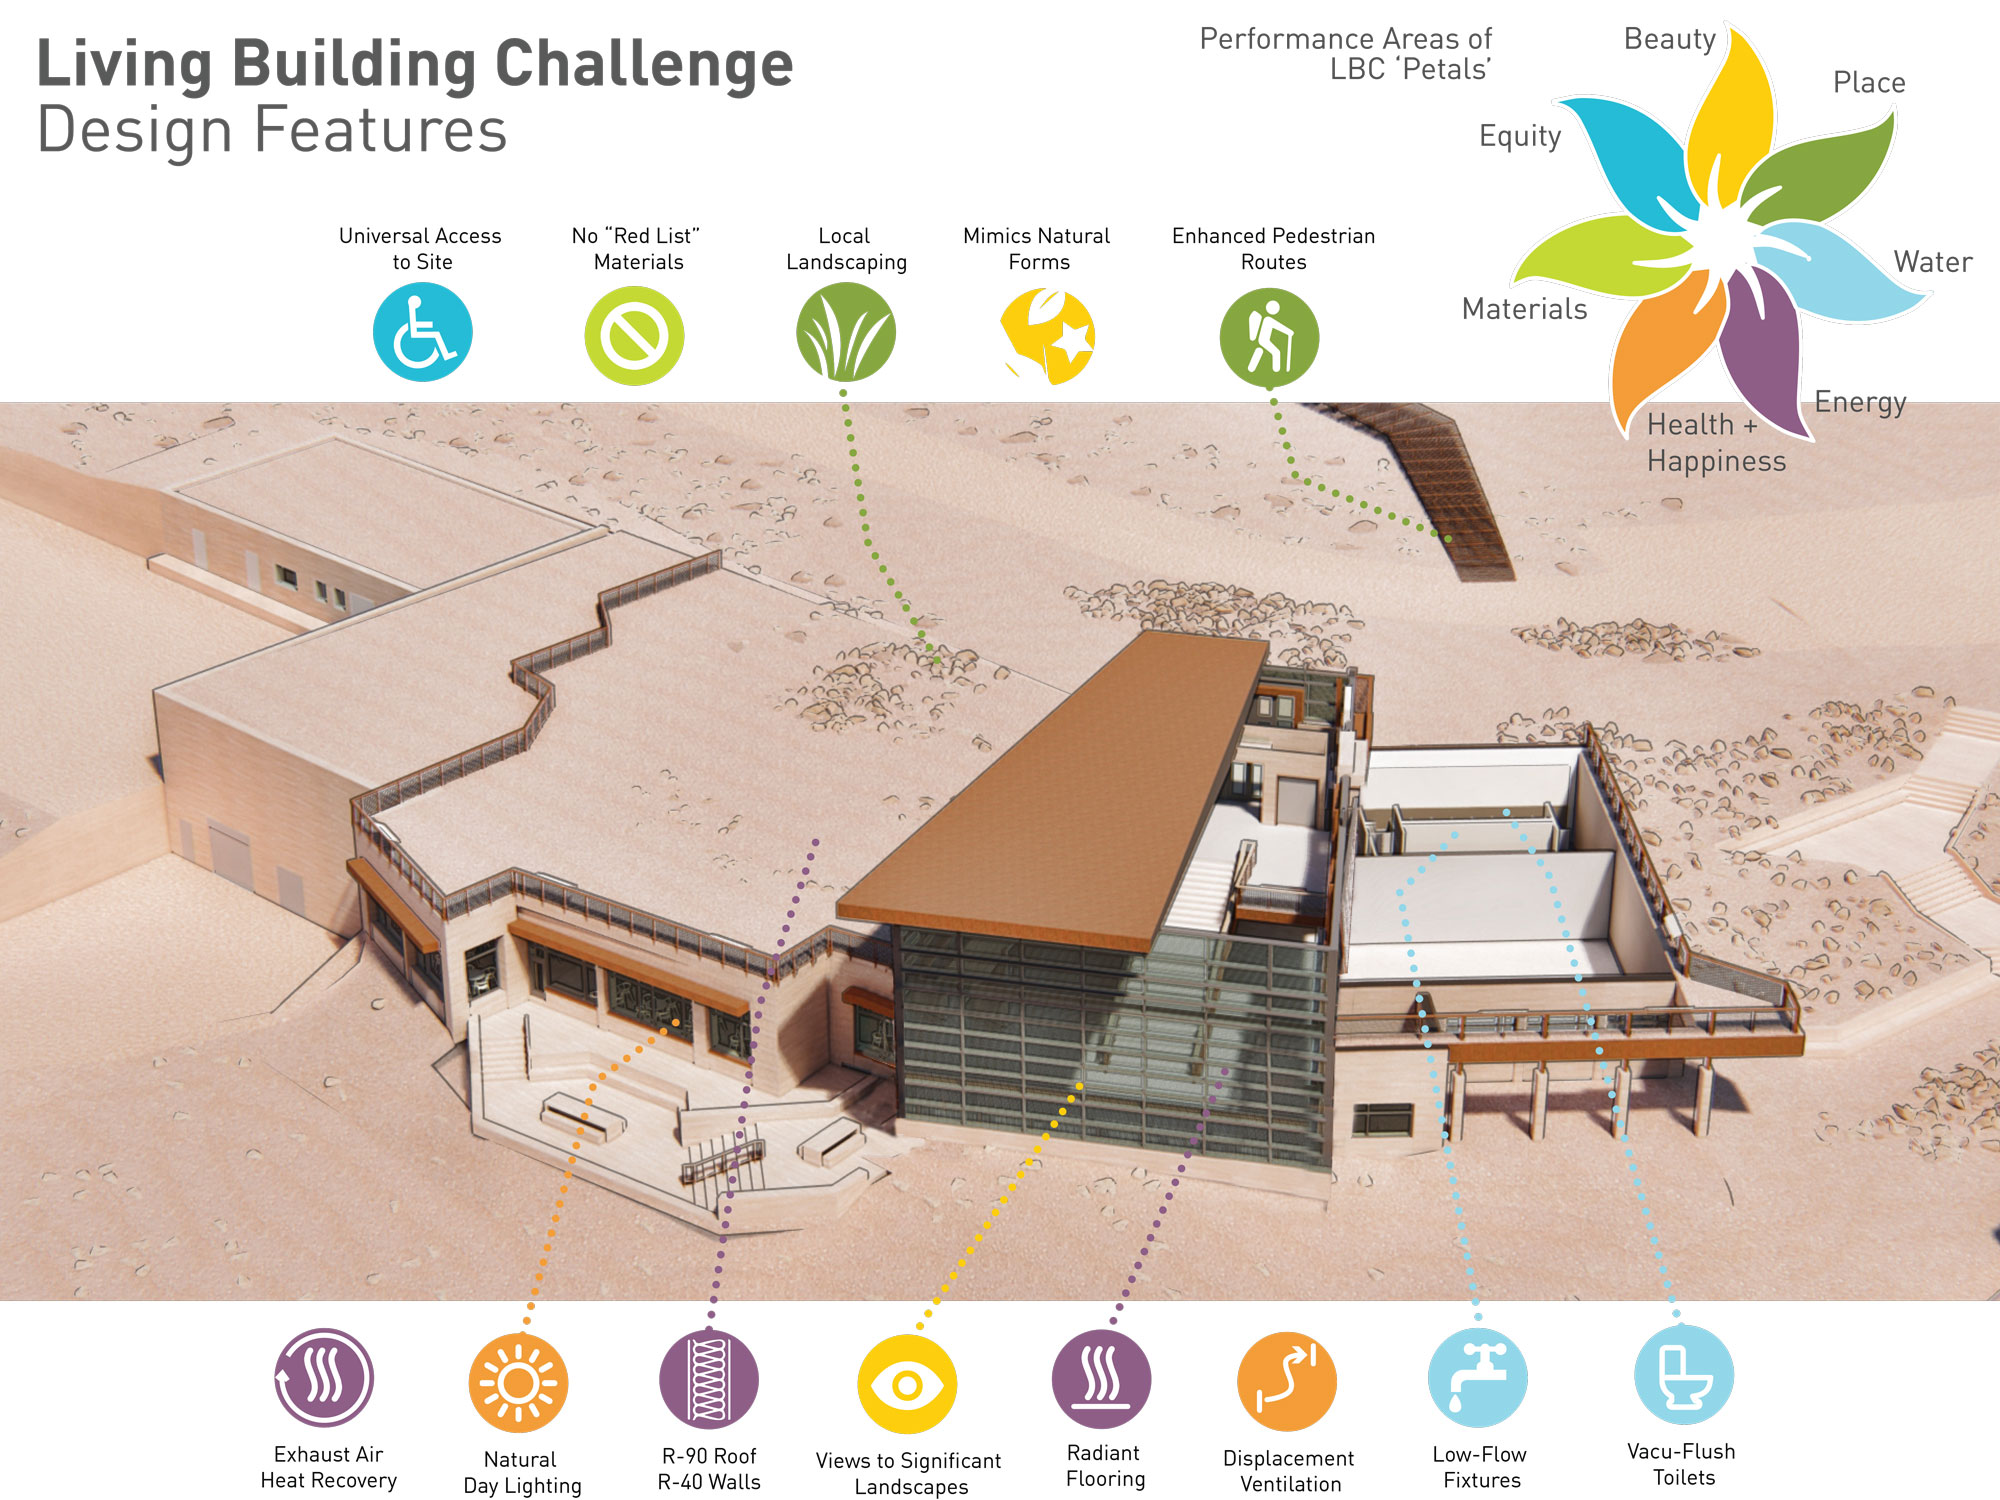 pikes peak graphic of summit house and sustainability features